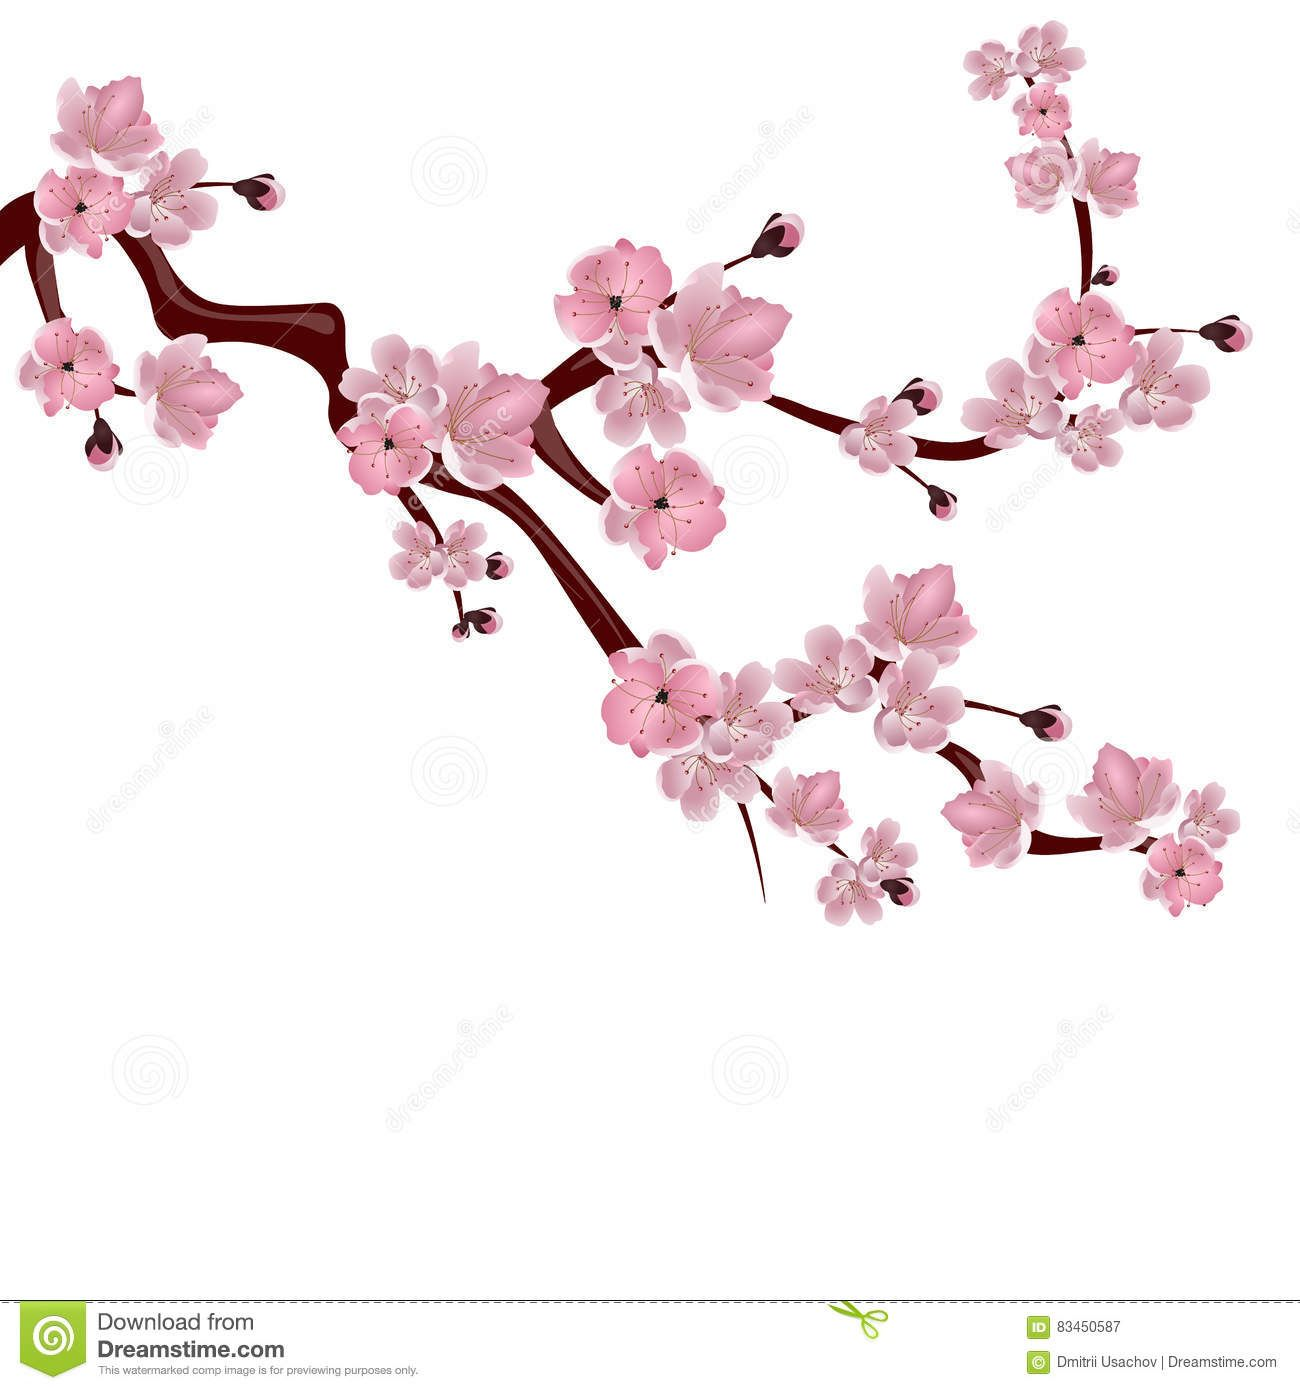 Japanese Cherry Tree A Branch Of Pink Cherry Blossom On White Background Illustration S Japanese Cherry Tree Cherry Blossoms Illustration Wildflower Drawing